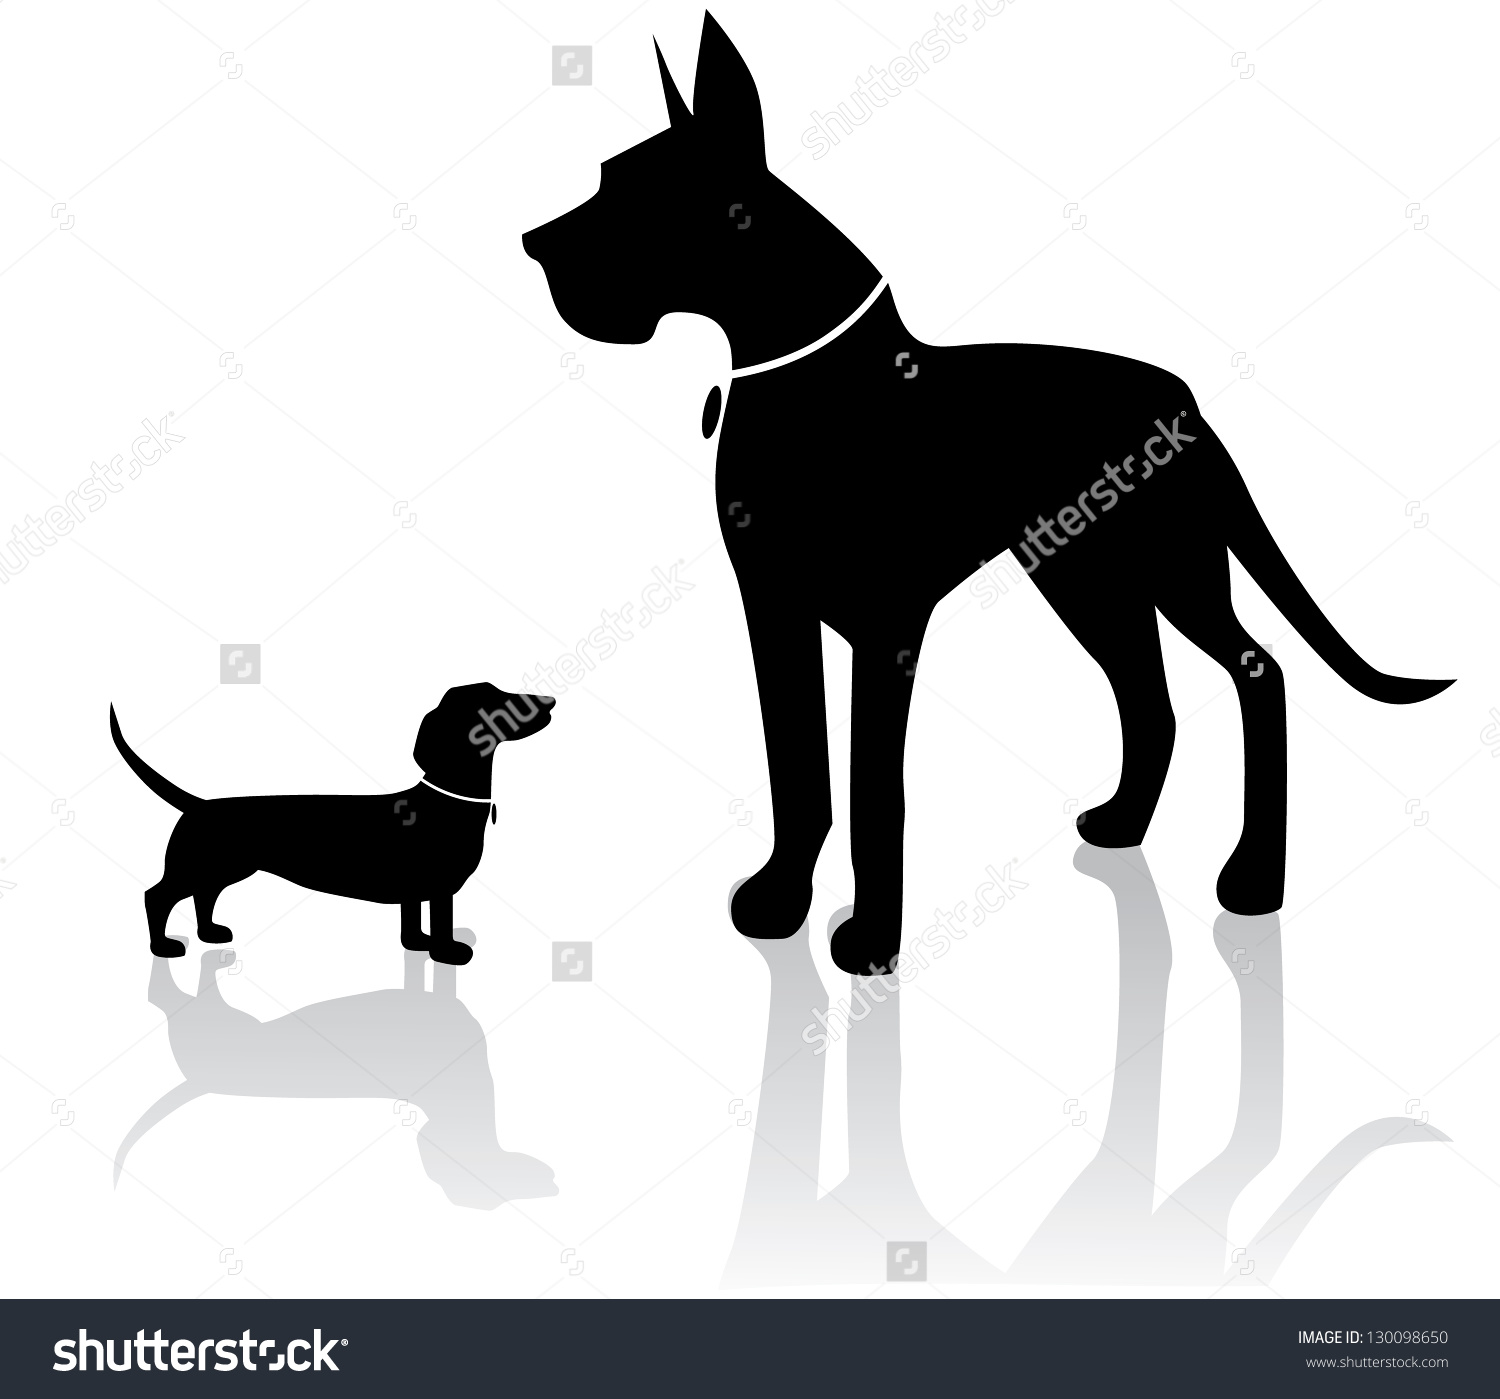 Clipart dog bigand small graphic transparent library Clipart dog bigand small - ClipartFest graphic transparent library